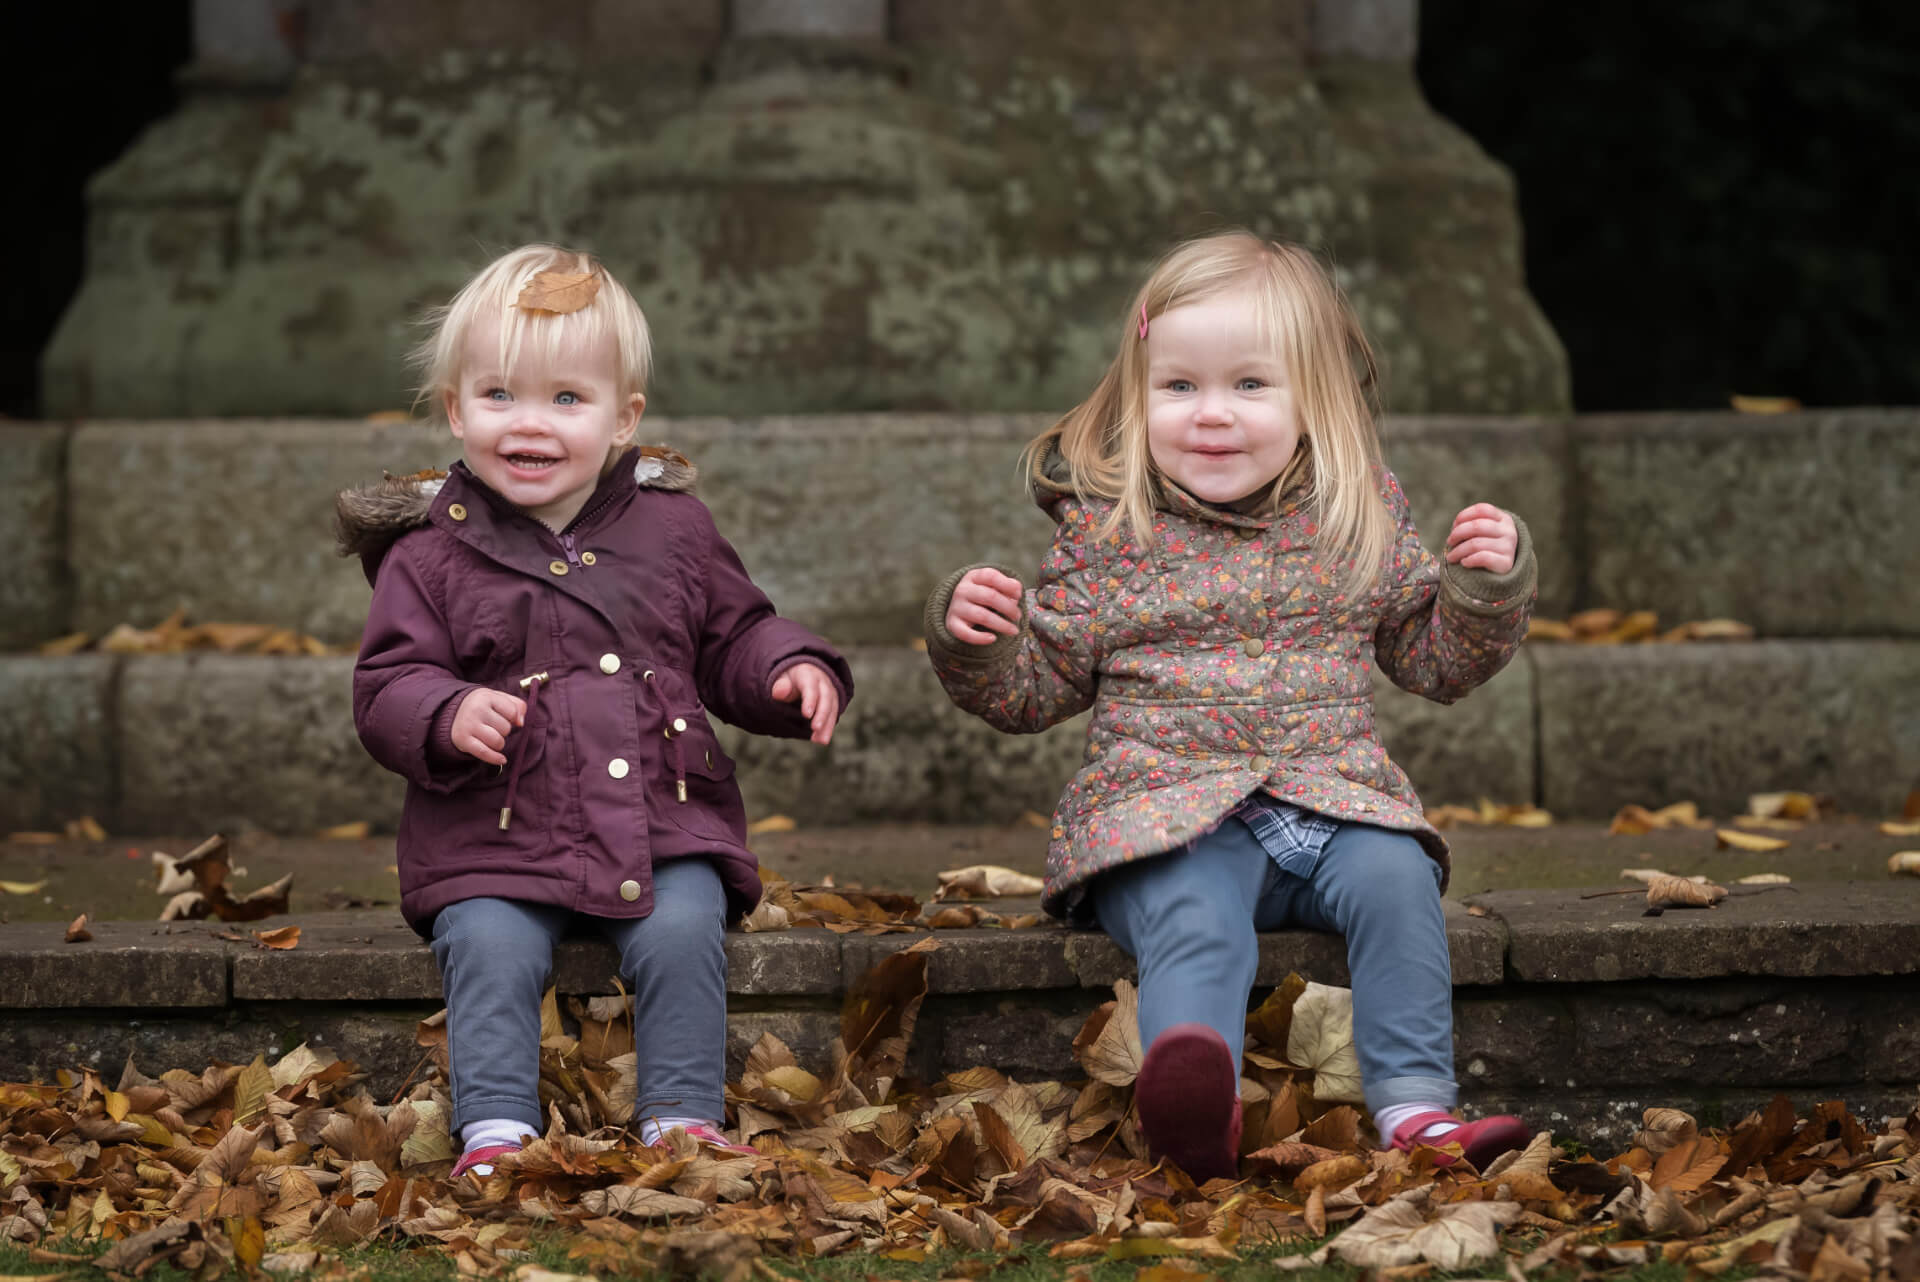 autumn outdoor family photoshoot - Sisters - Slice of Life Photography, Lincolnshire